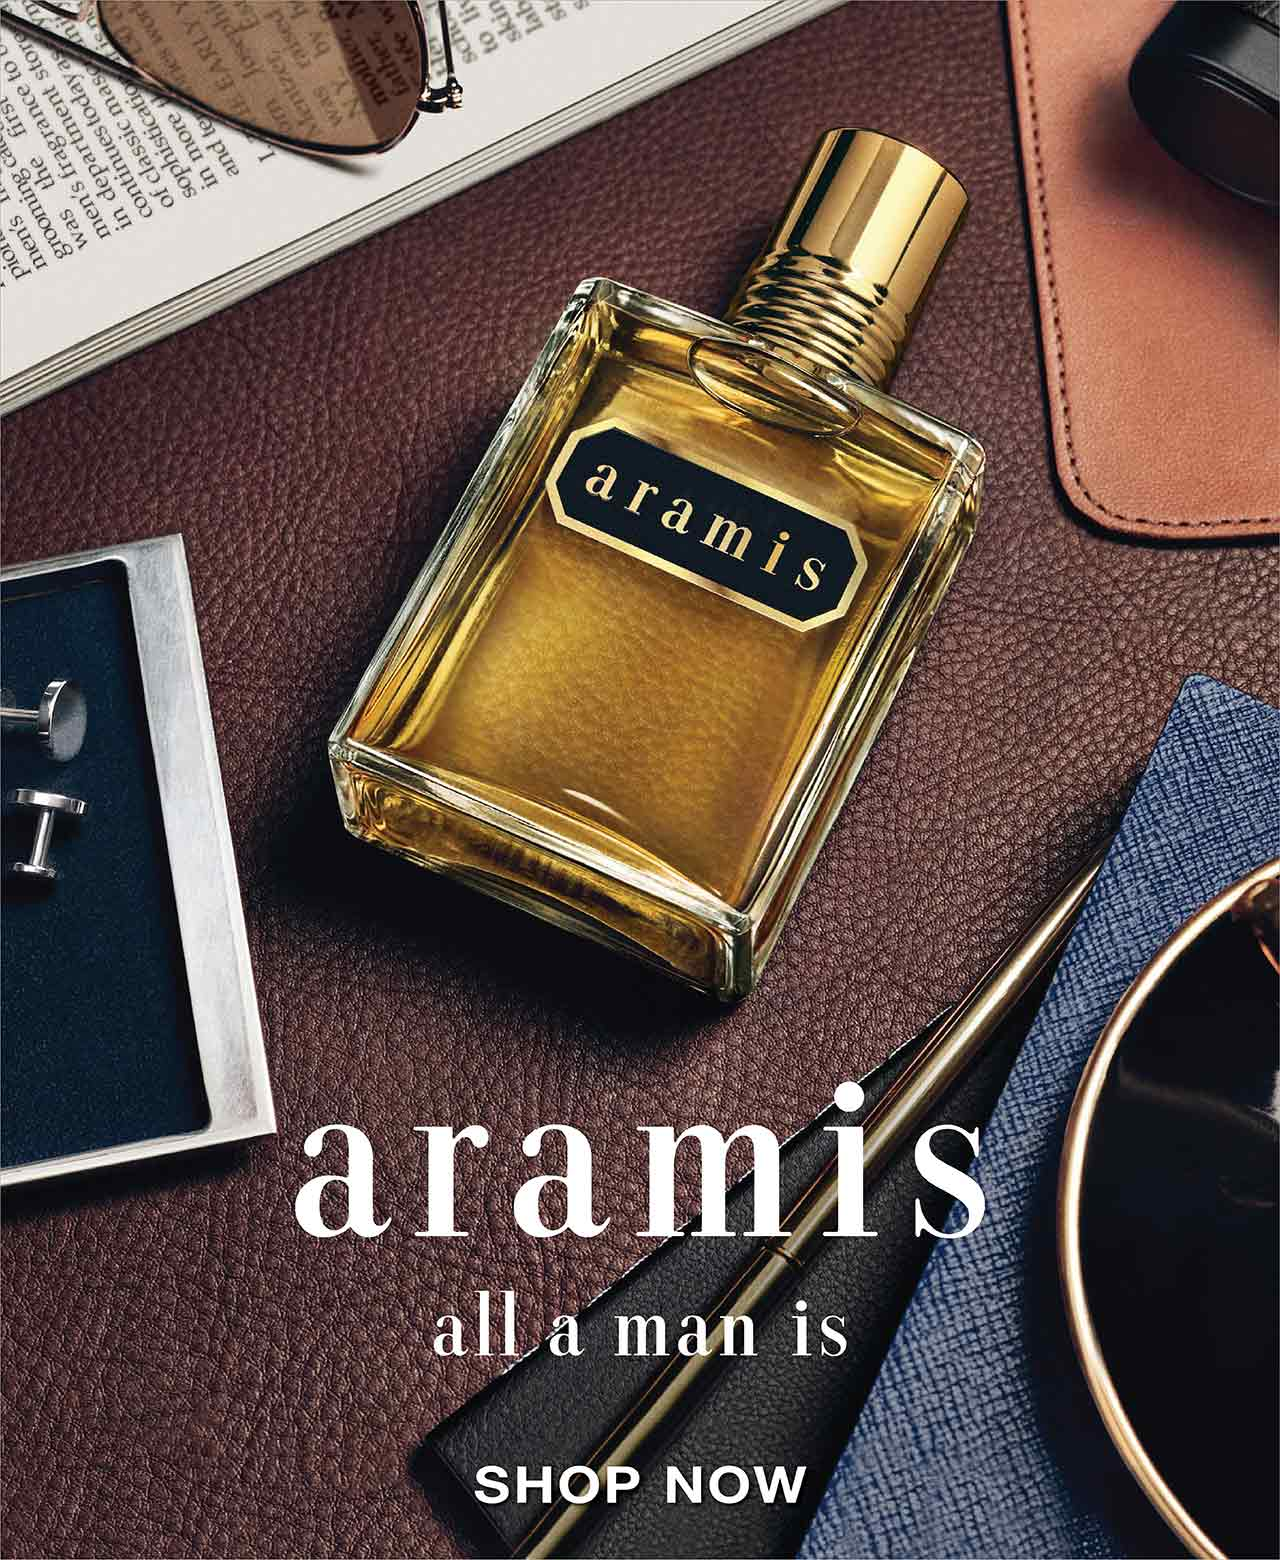 Aramis all a mani is. Shop now.